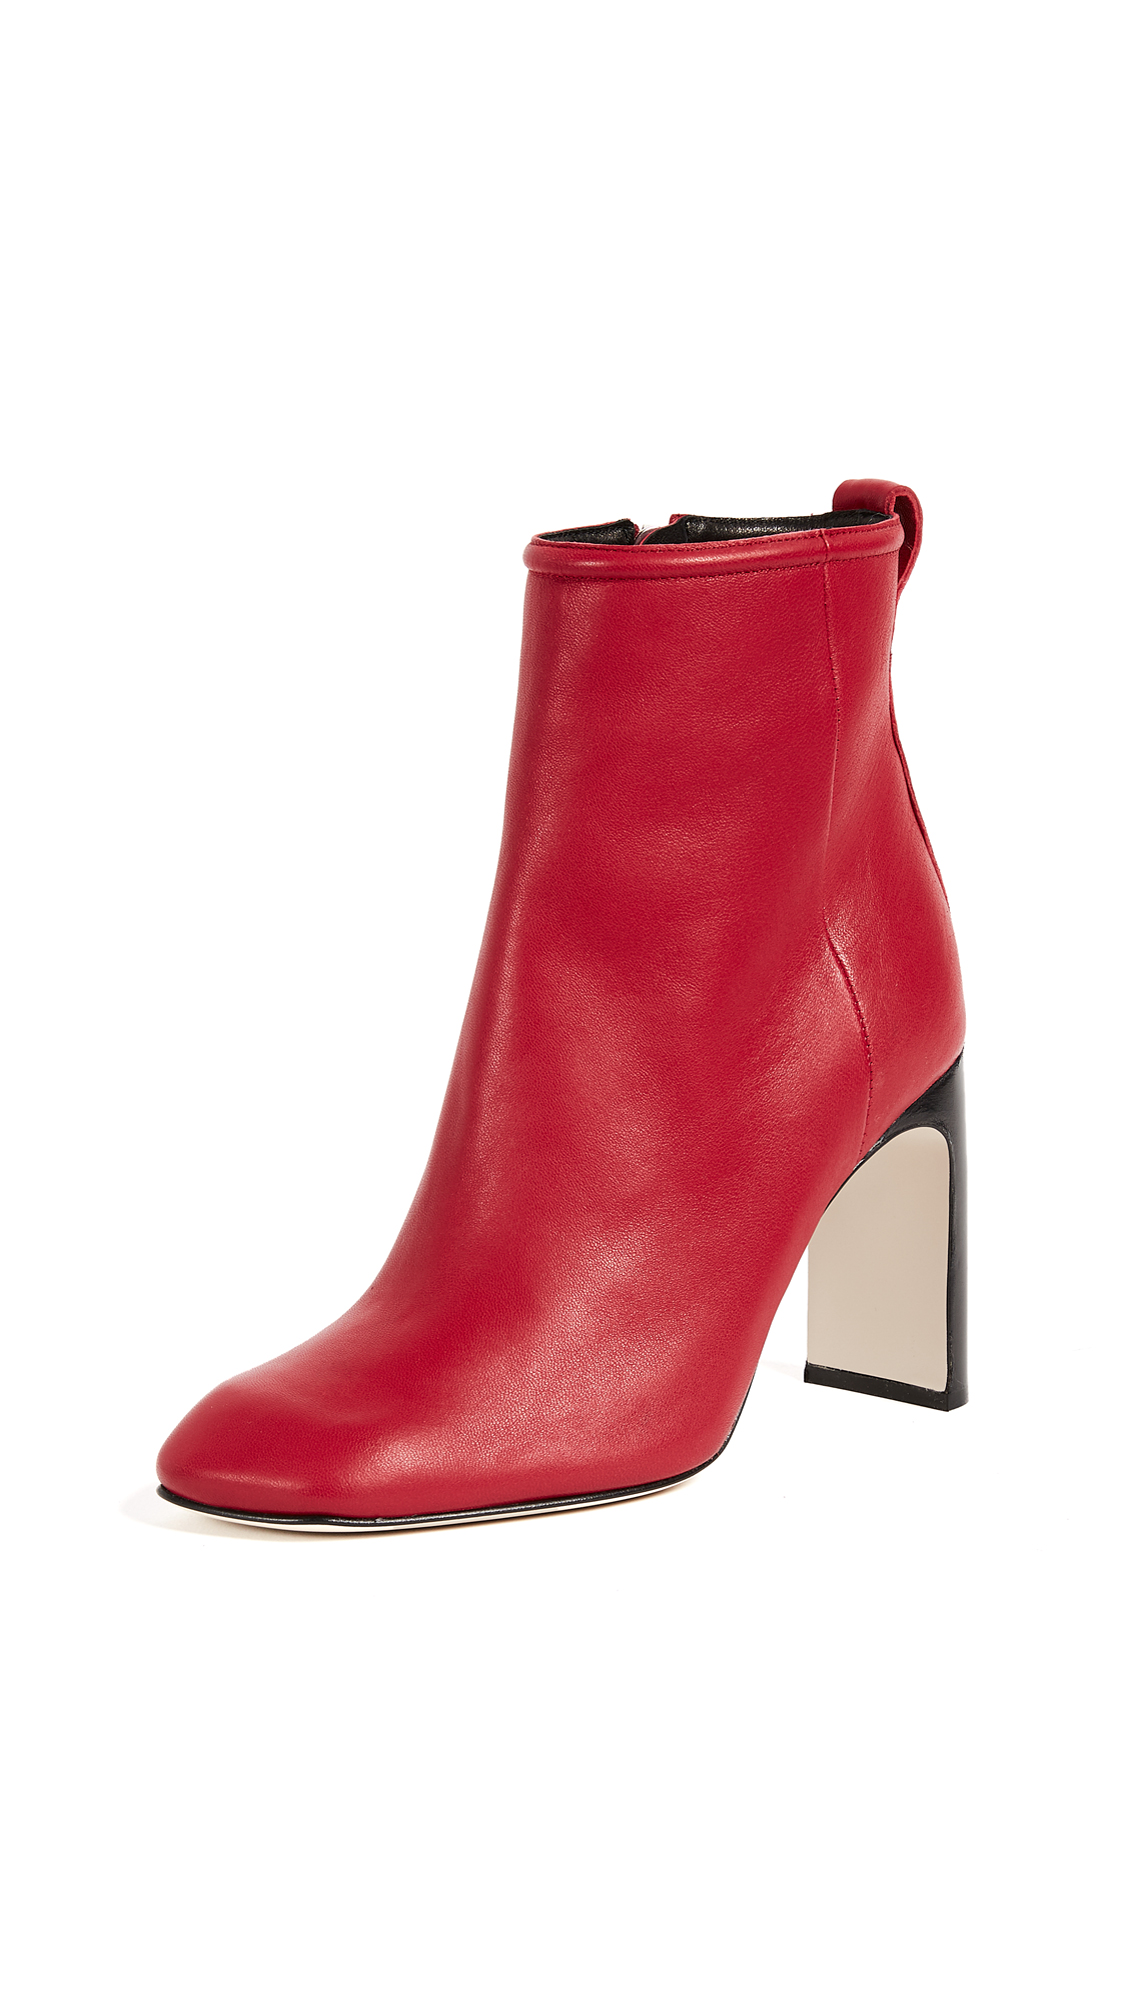 Rag & Bone Ellis Booties - Red